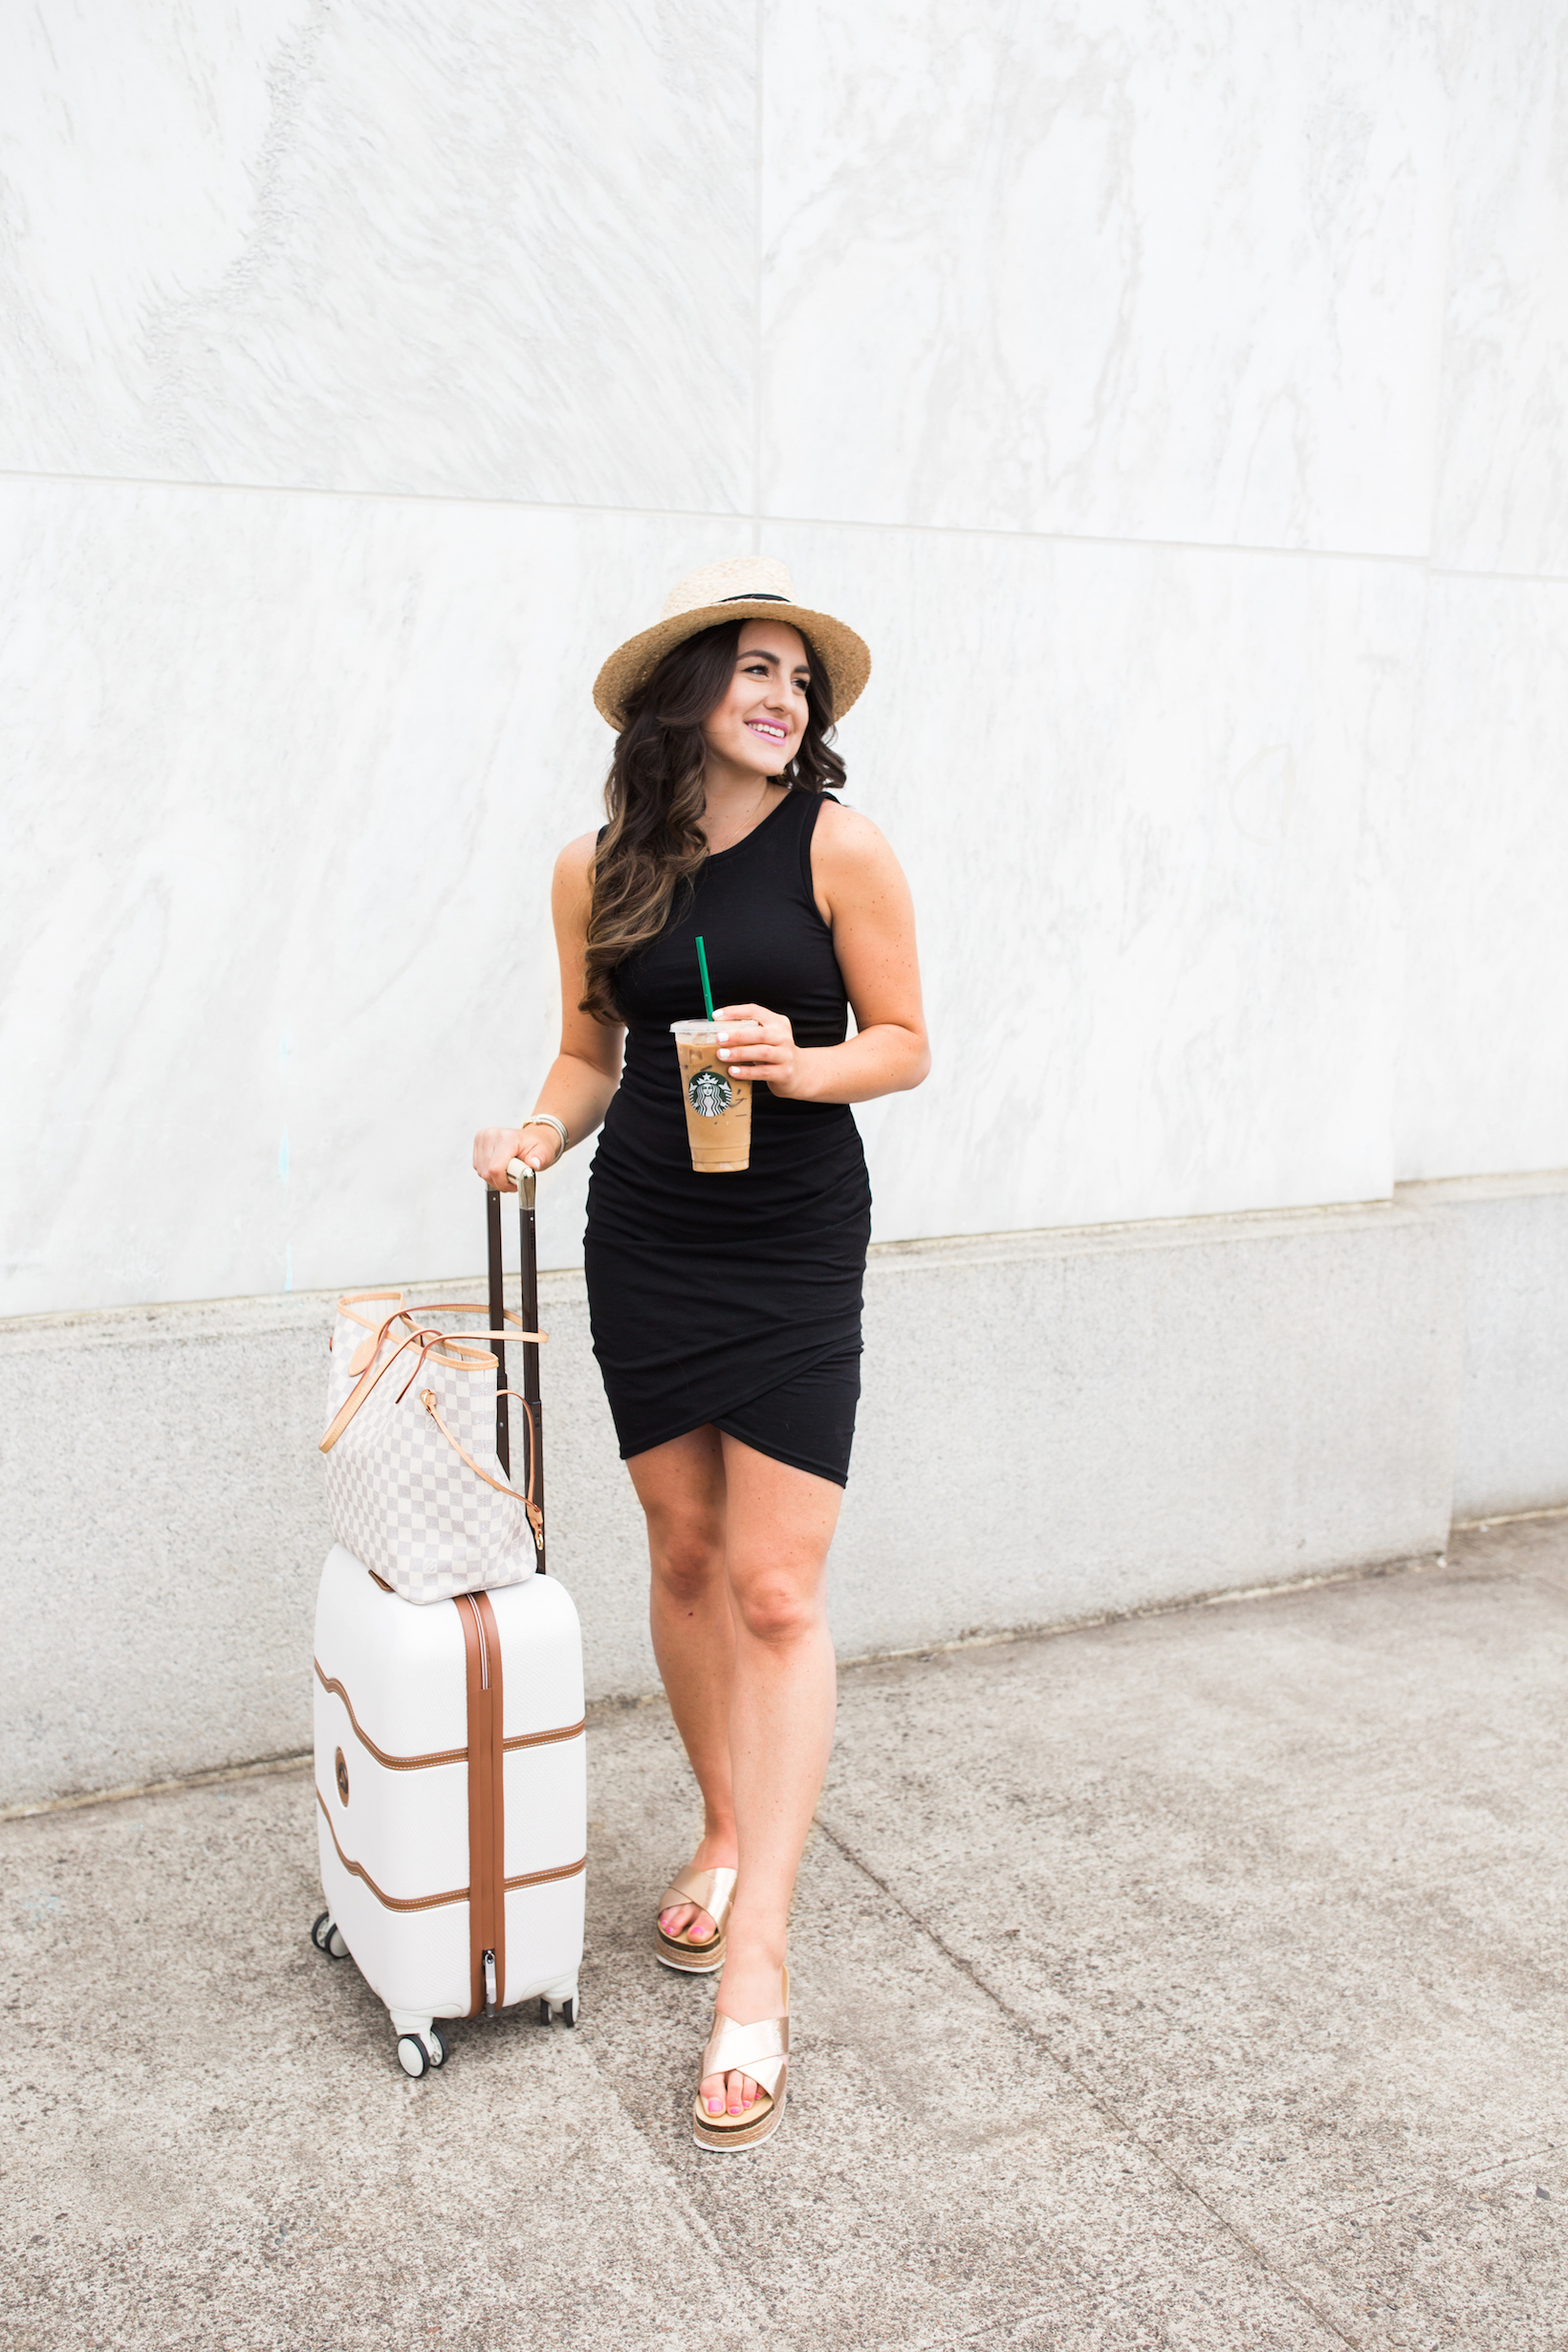 Need to know what to pack in your carry on bags? Bet you never thought to pack THIS! Check out this post to see what it is!